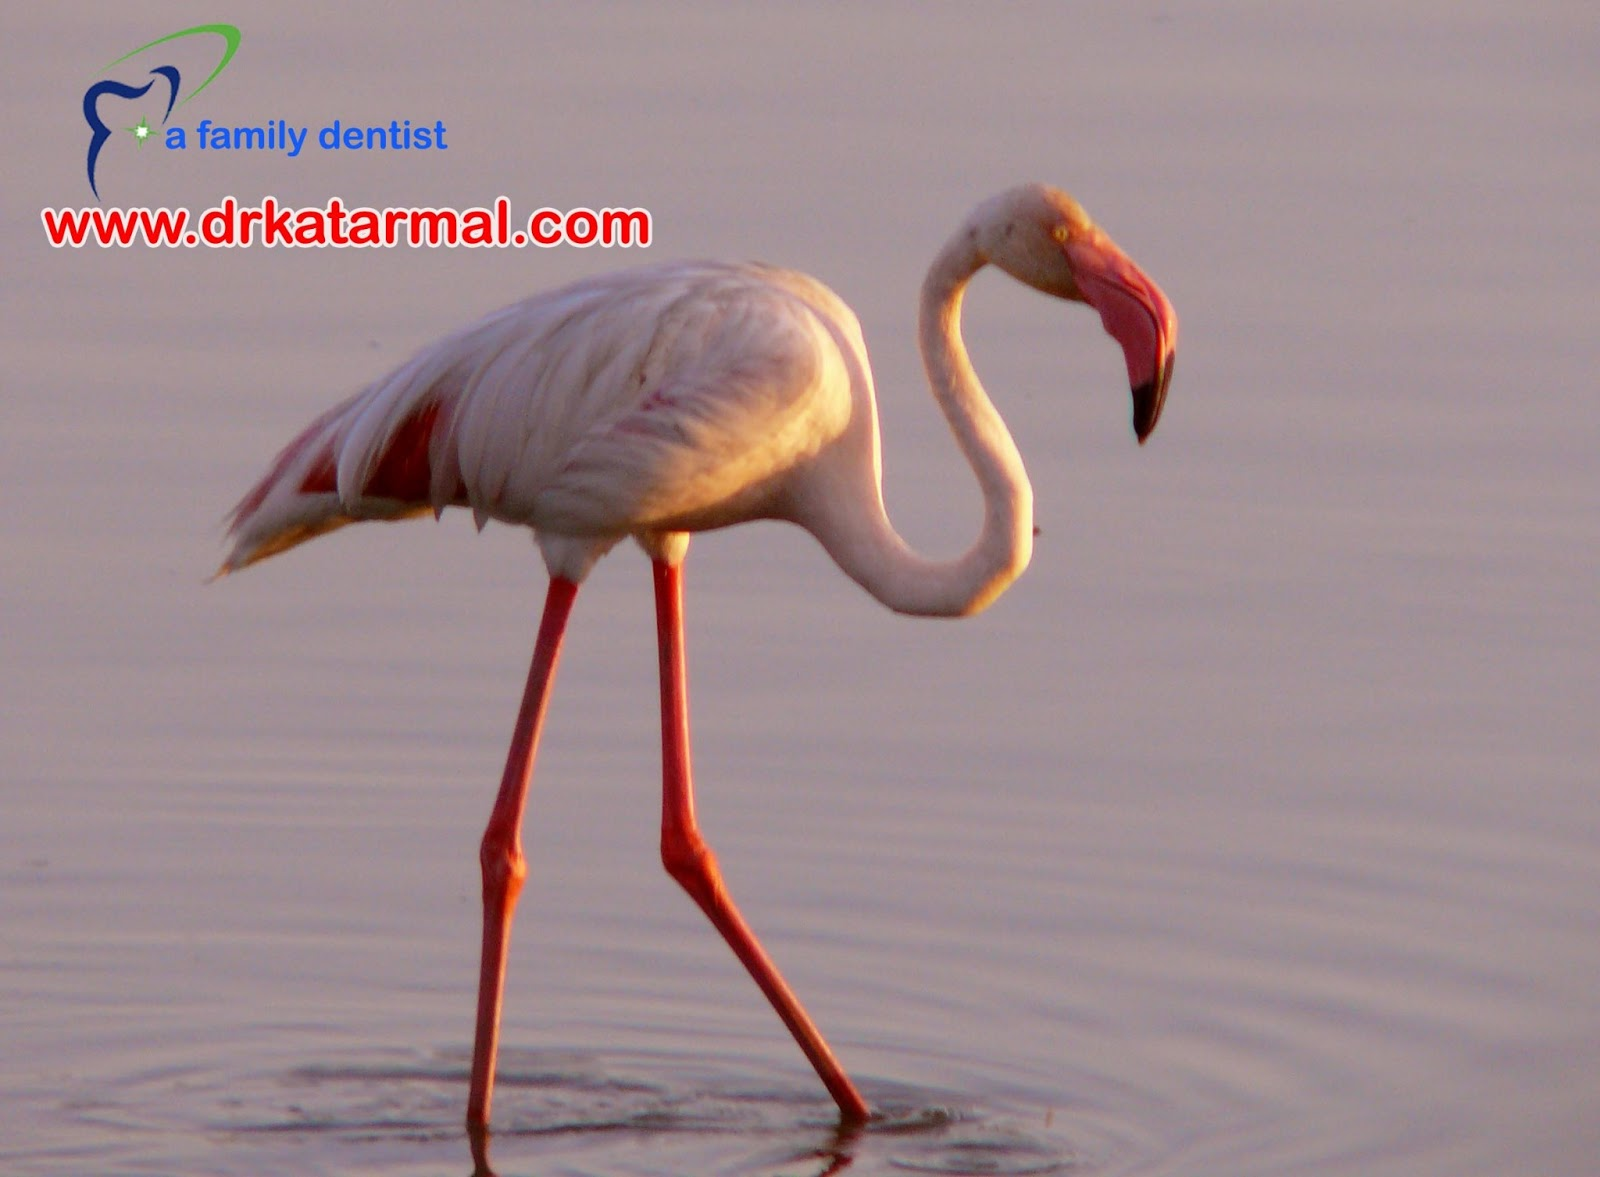 this is picture of greater flemingo, taken at khijadia bird centuary, heaven for birds at jamnagar